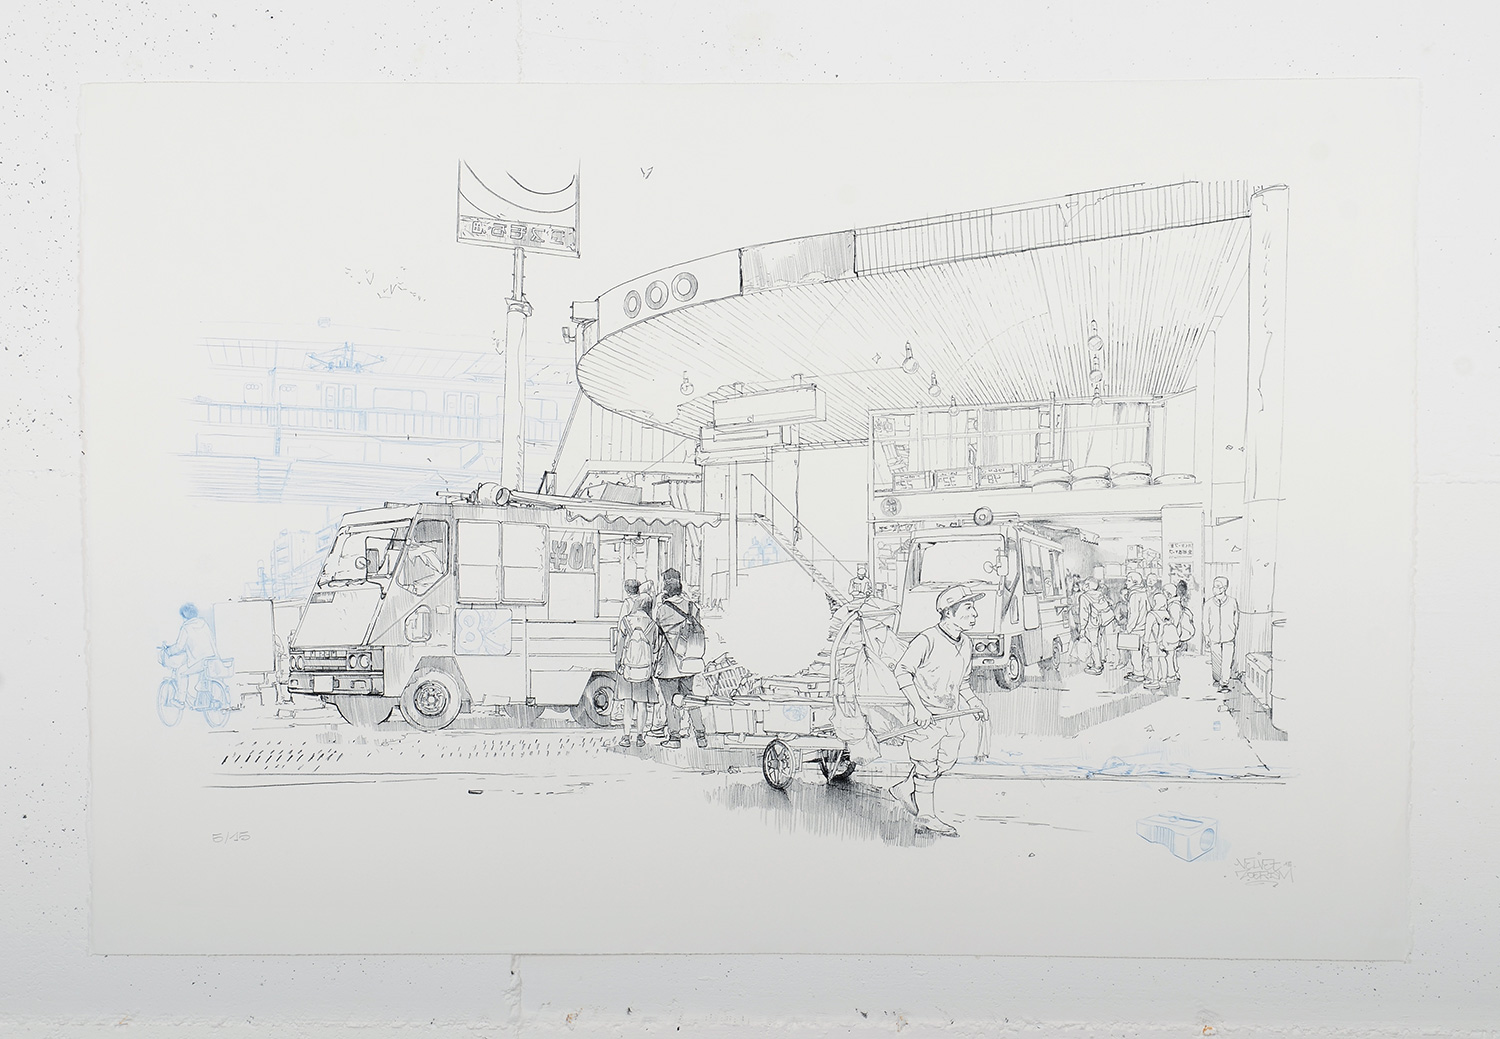 zoer_velvet_street_food_lithographie_CSX_stone_lithograph_urdla_graffiti_process_zoerism_soldart_edition_royx_nicolas_royol_44